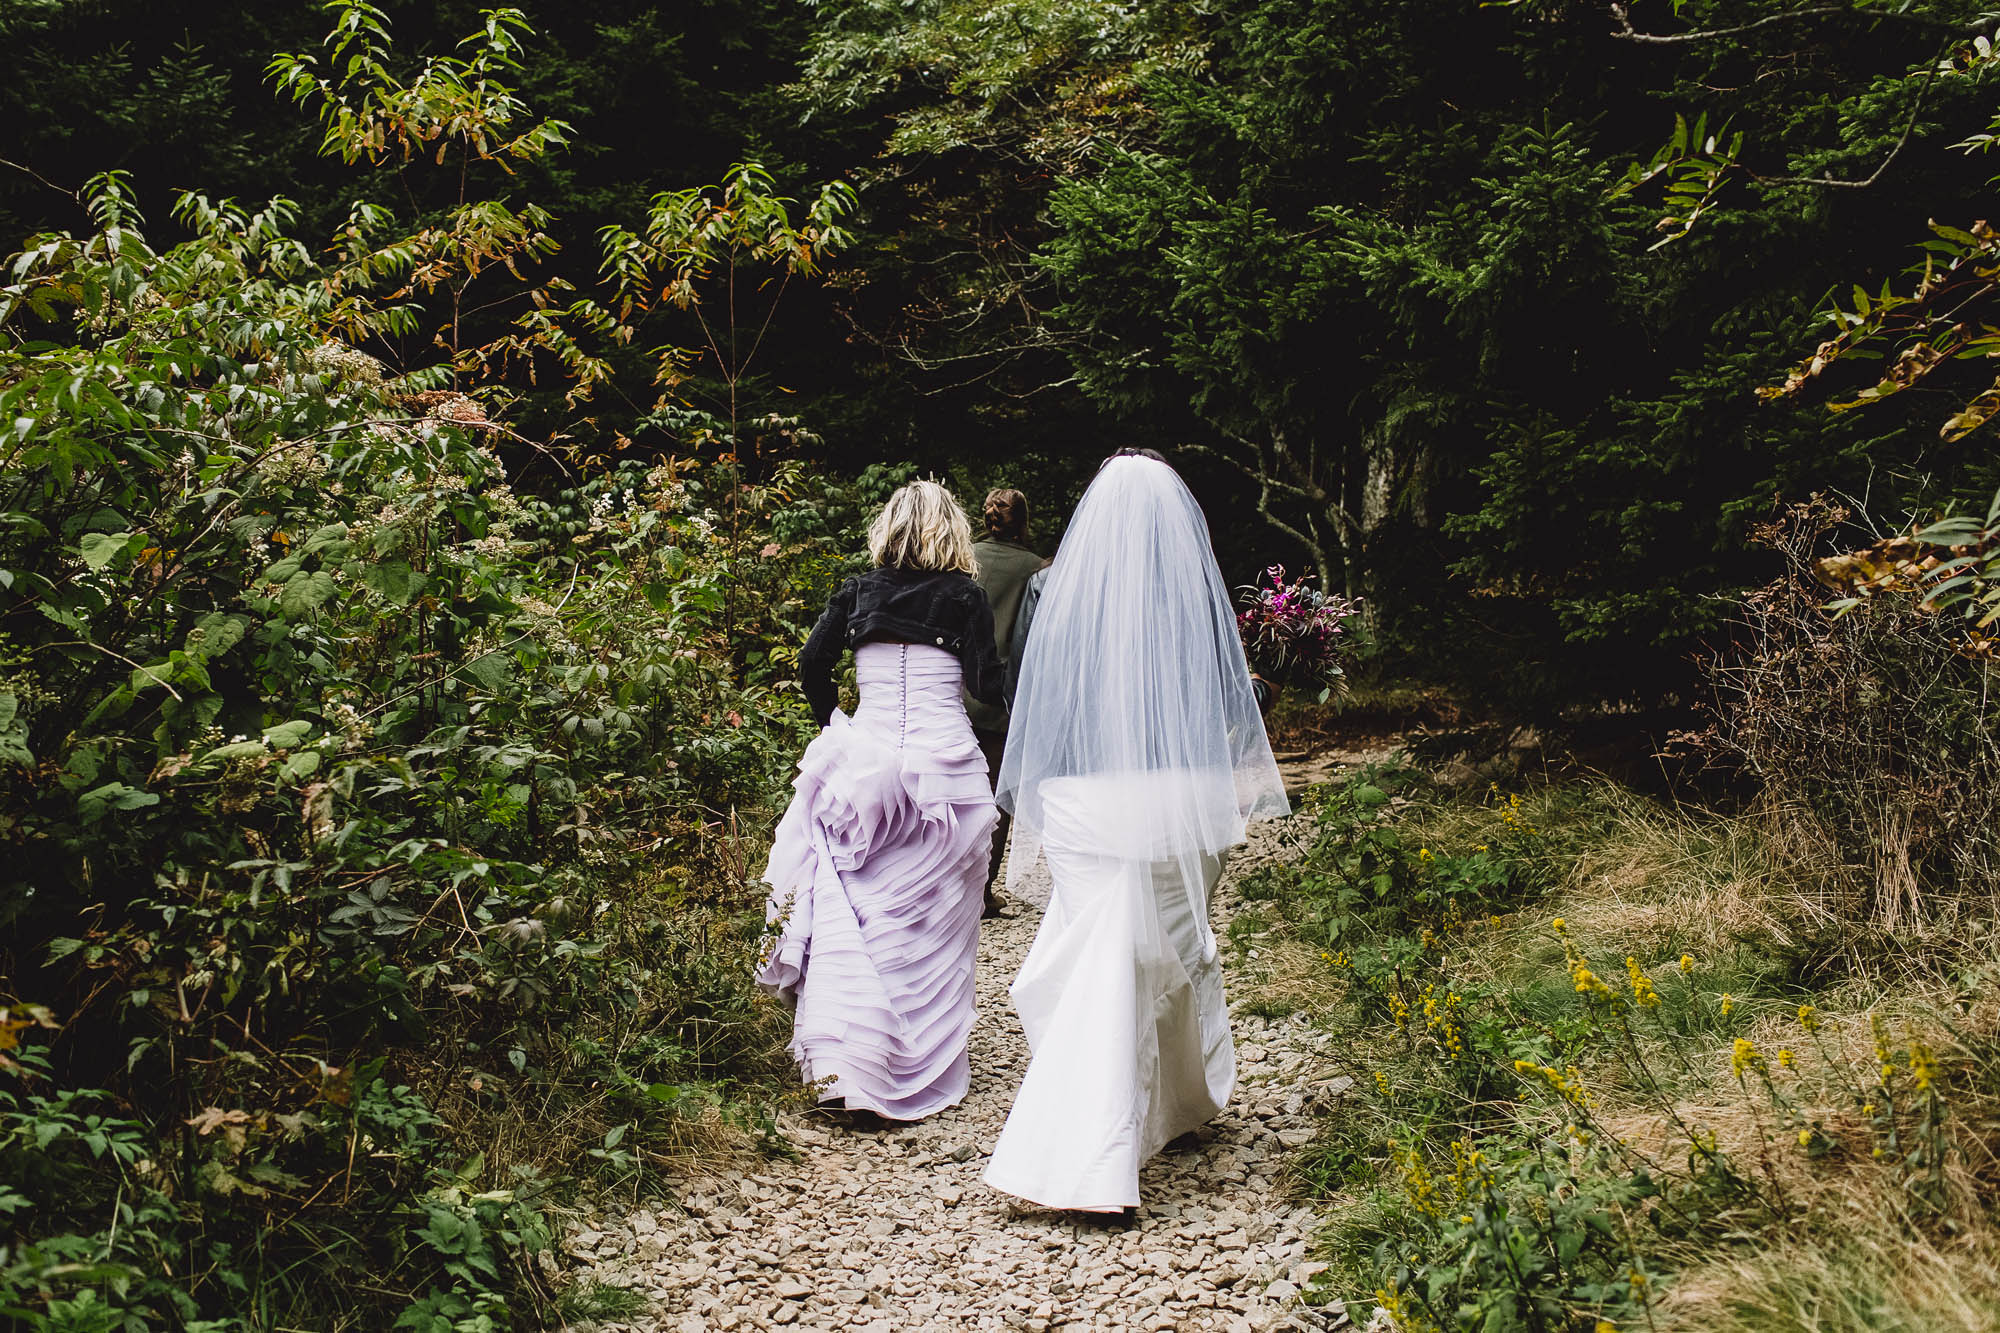 Covid Wedding - Forest Hiking Wedding - Queer